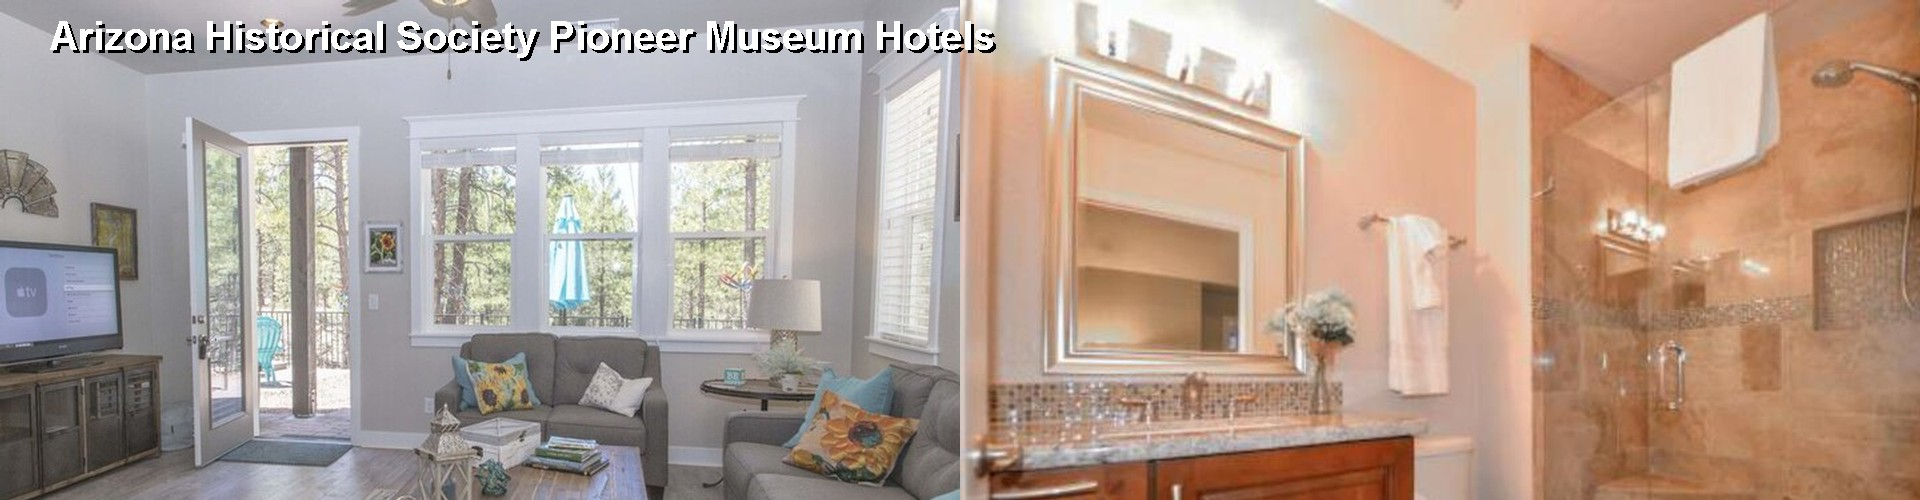 4 Best Hotels near Arizona Historical Society Pioneer Museum